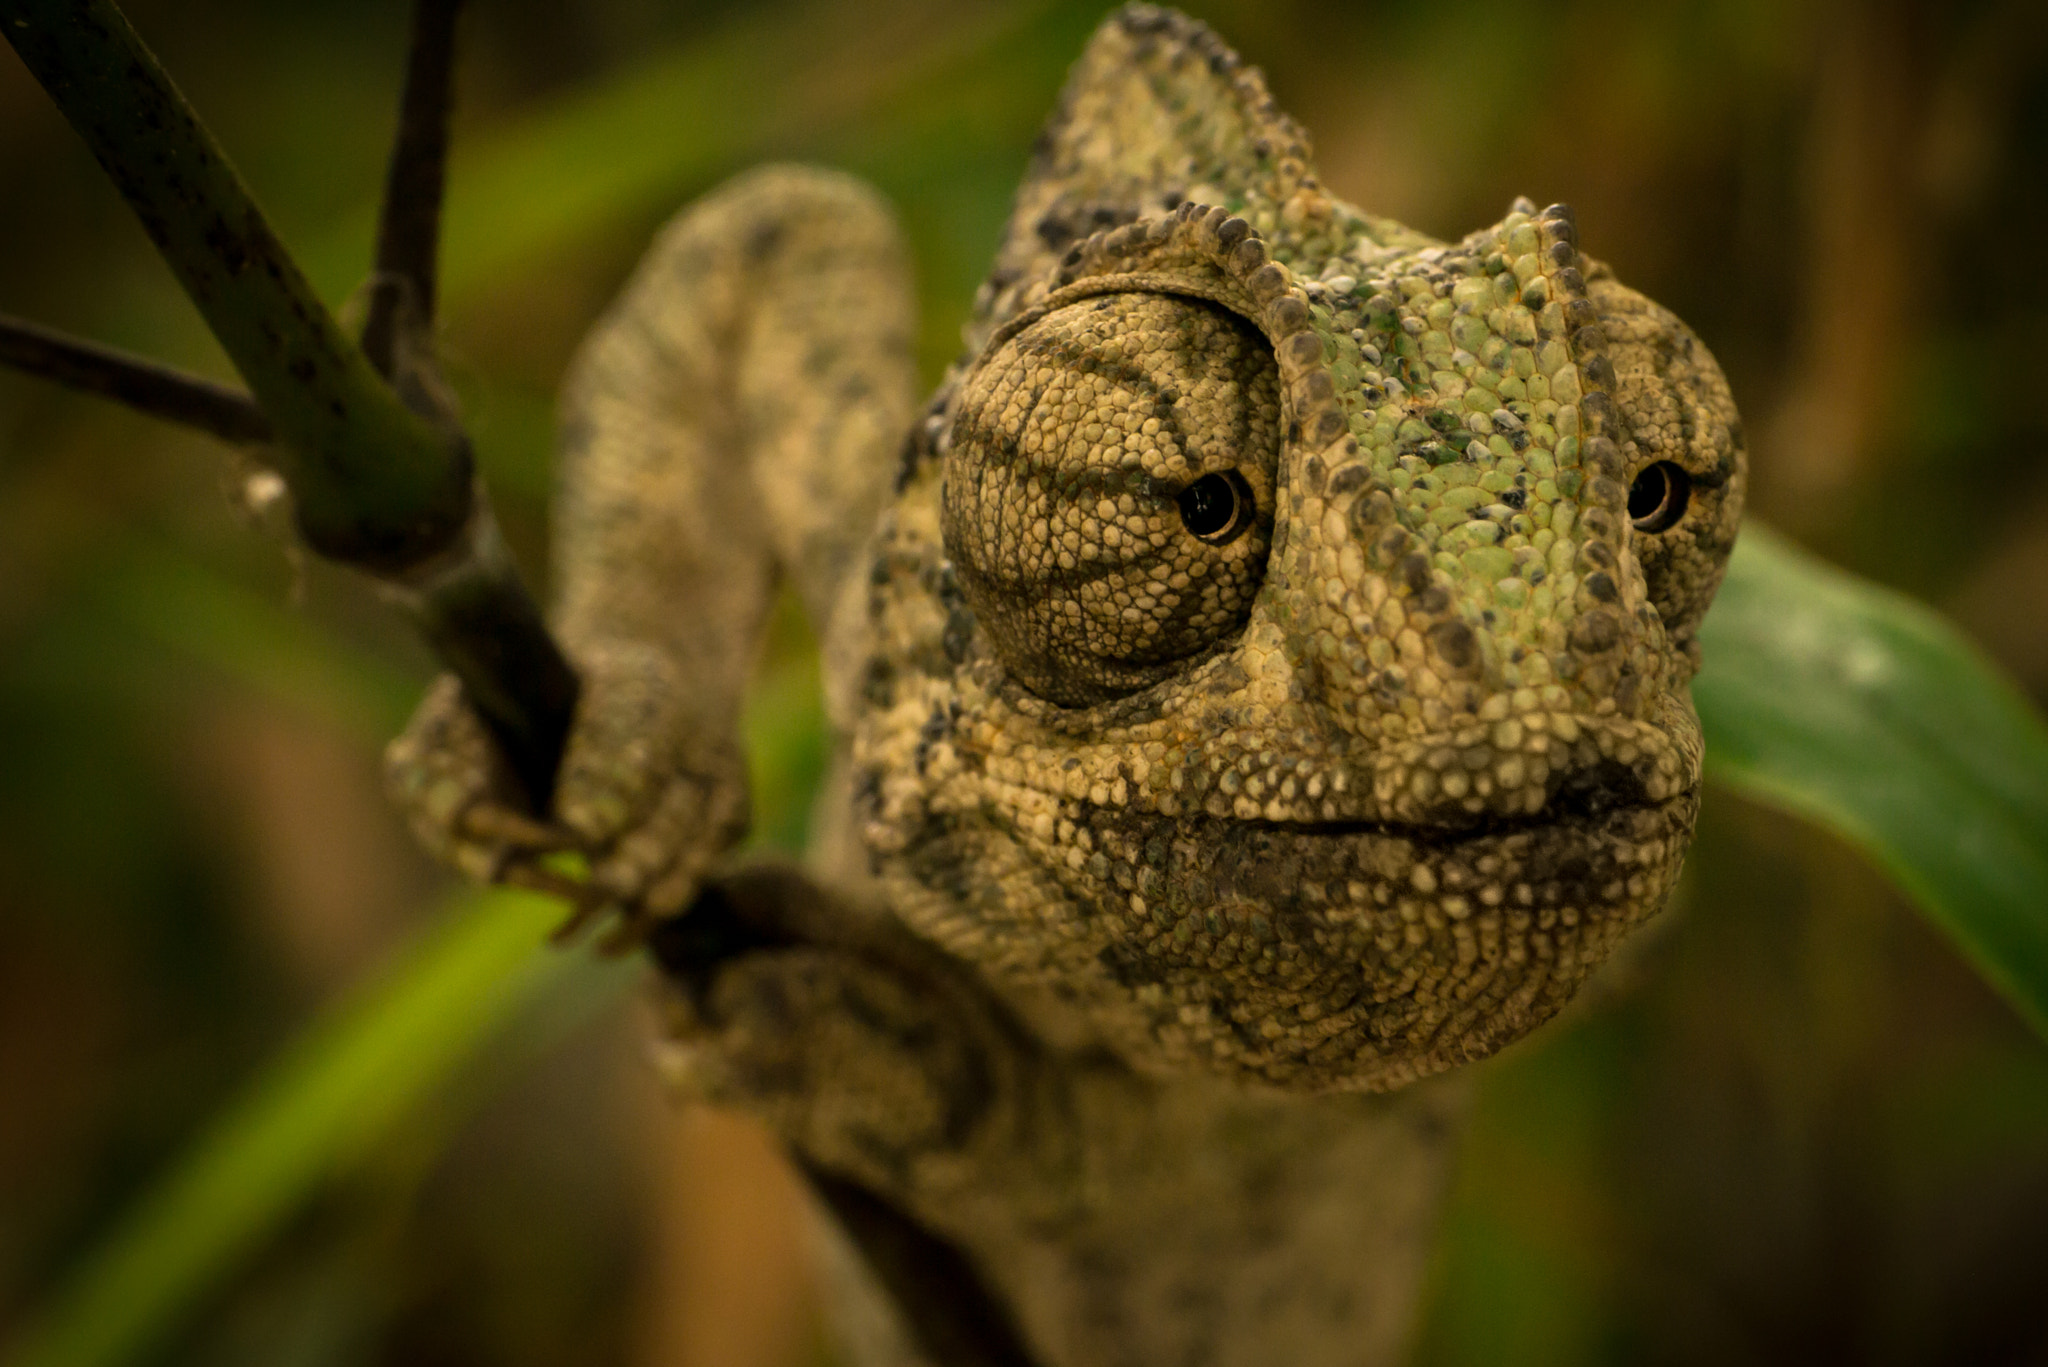 Photograph Chameleon - 3 by Amine Fassi on 500px